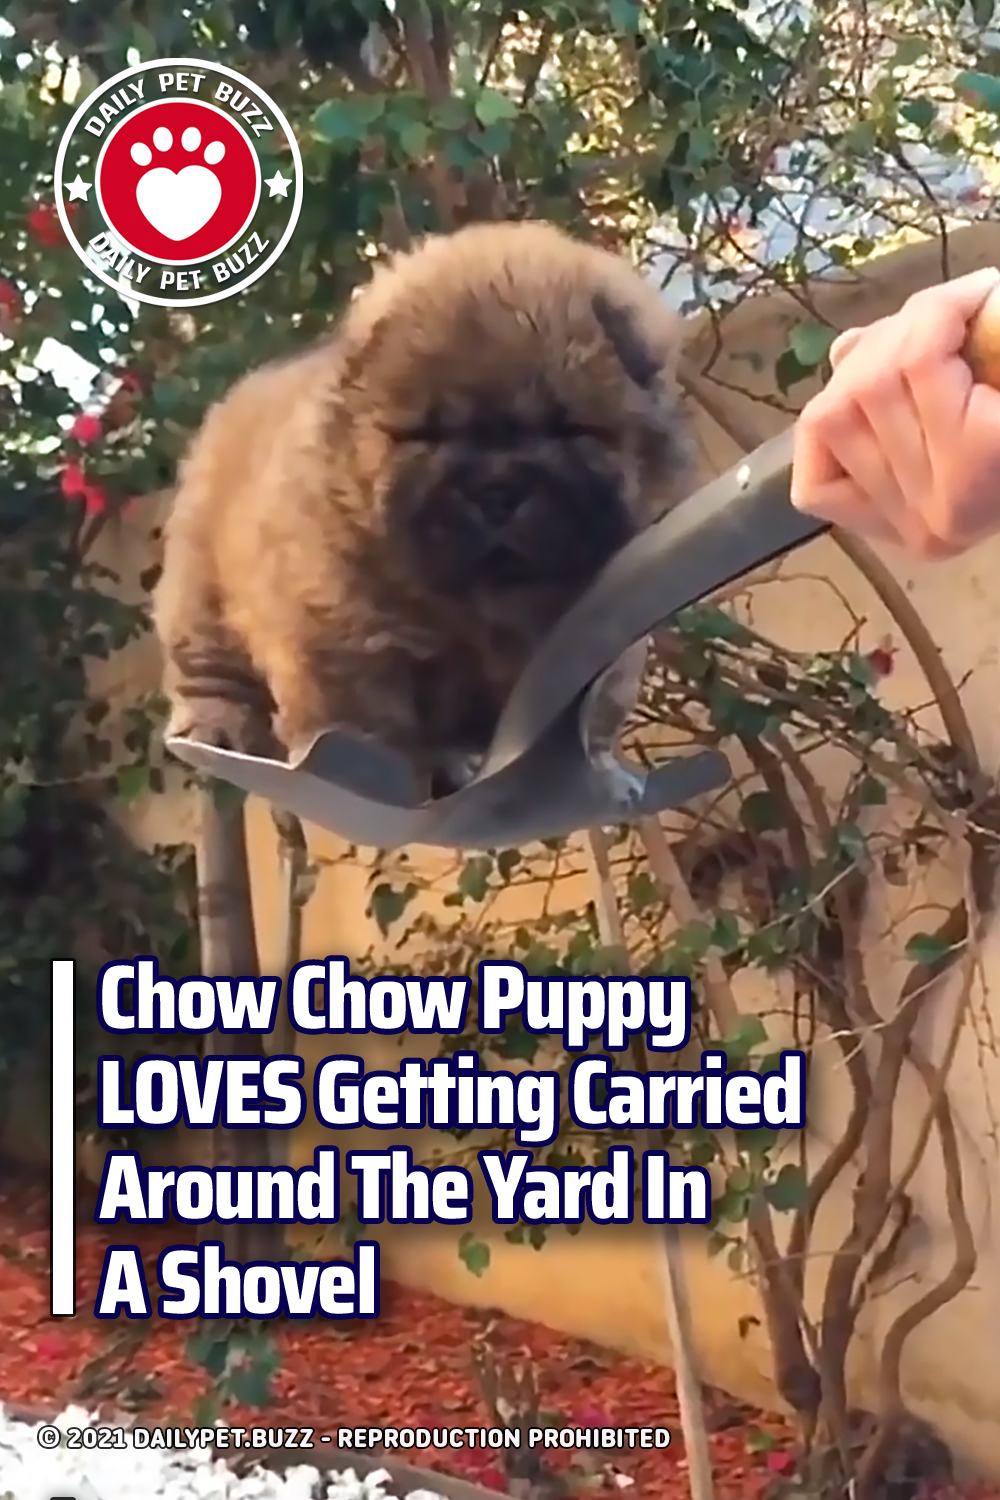 Chow Chow Puppy LOVES Getting Carried Around The Yard In A Shovel